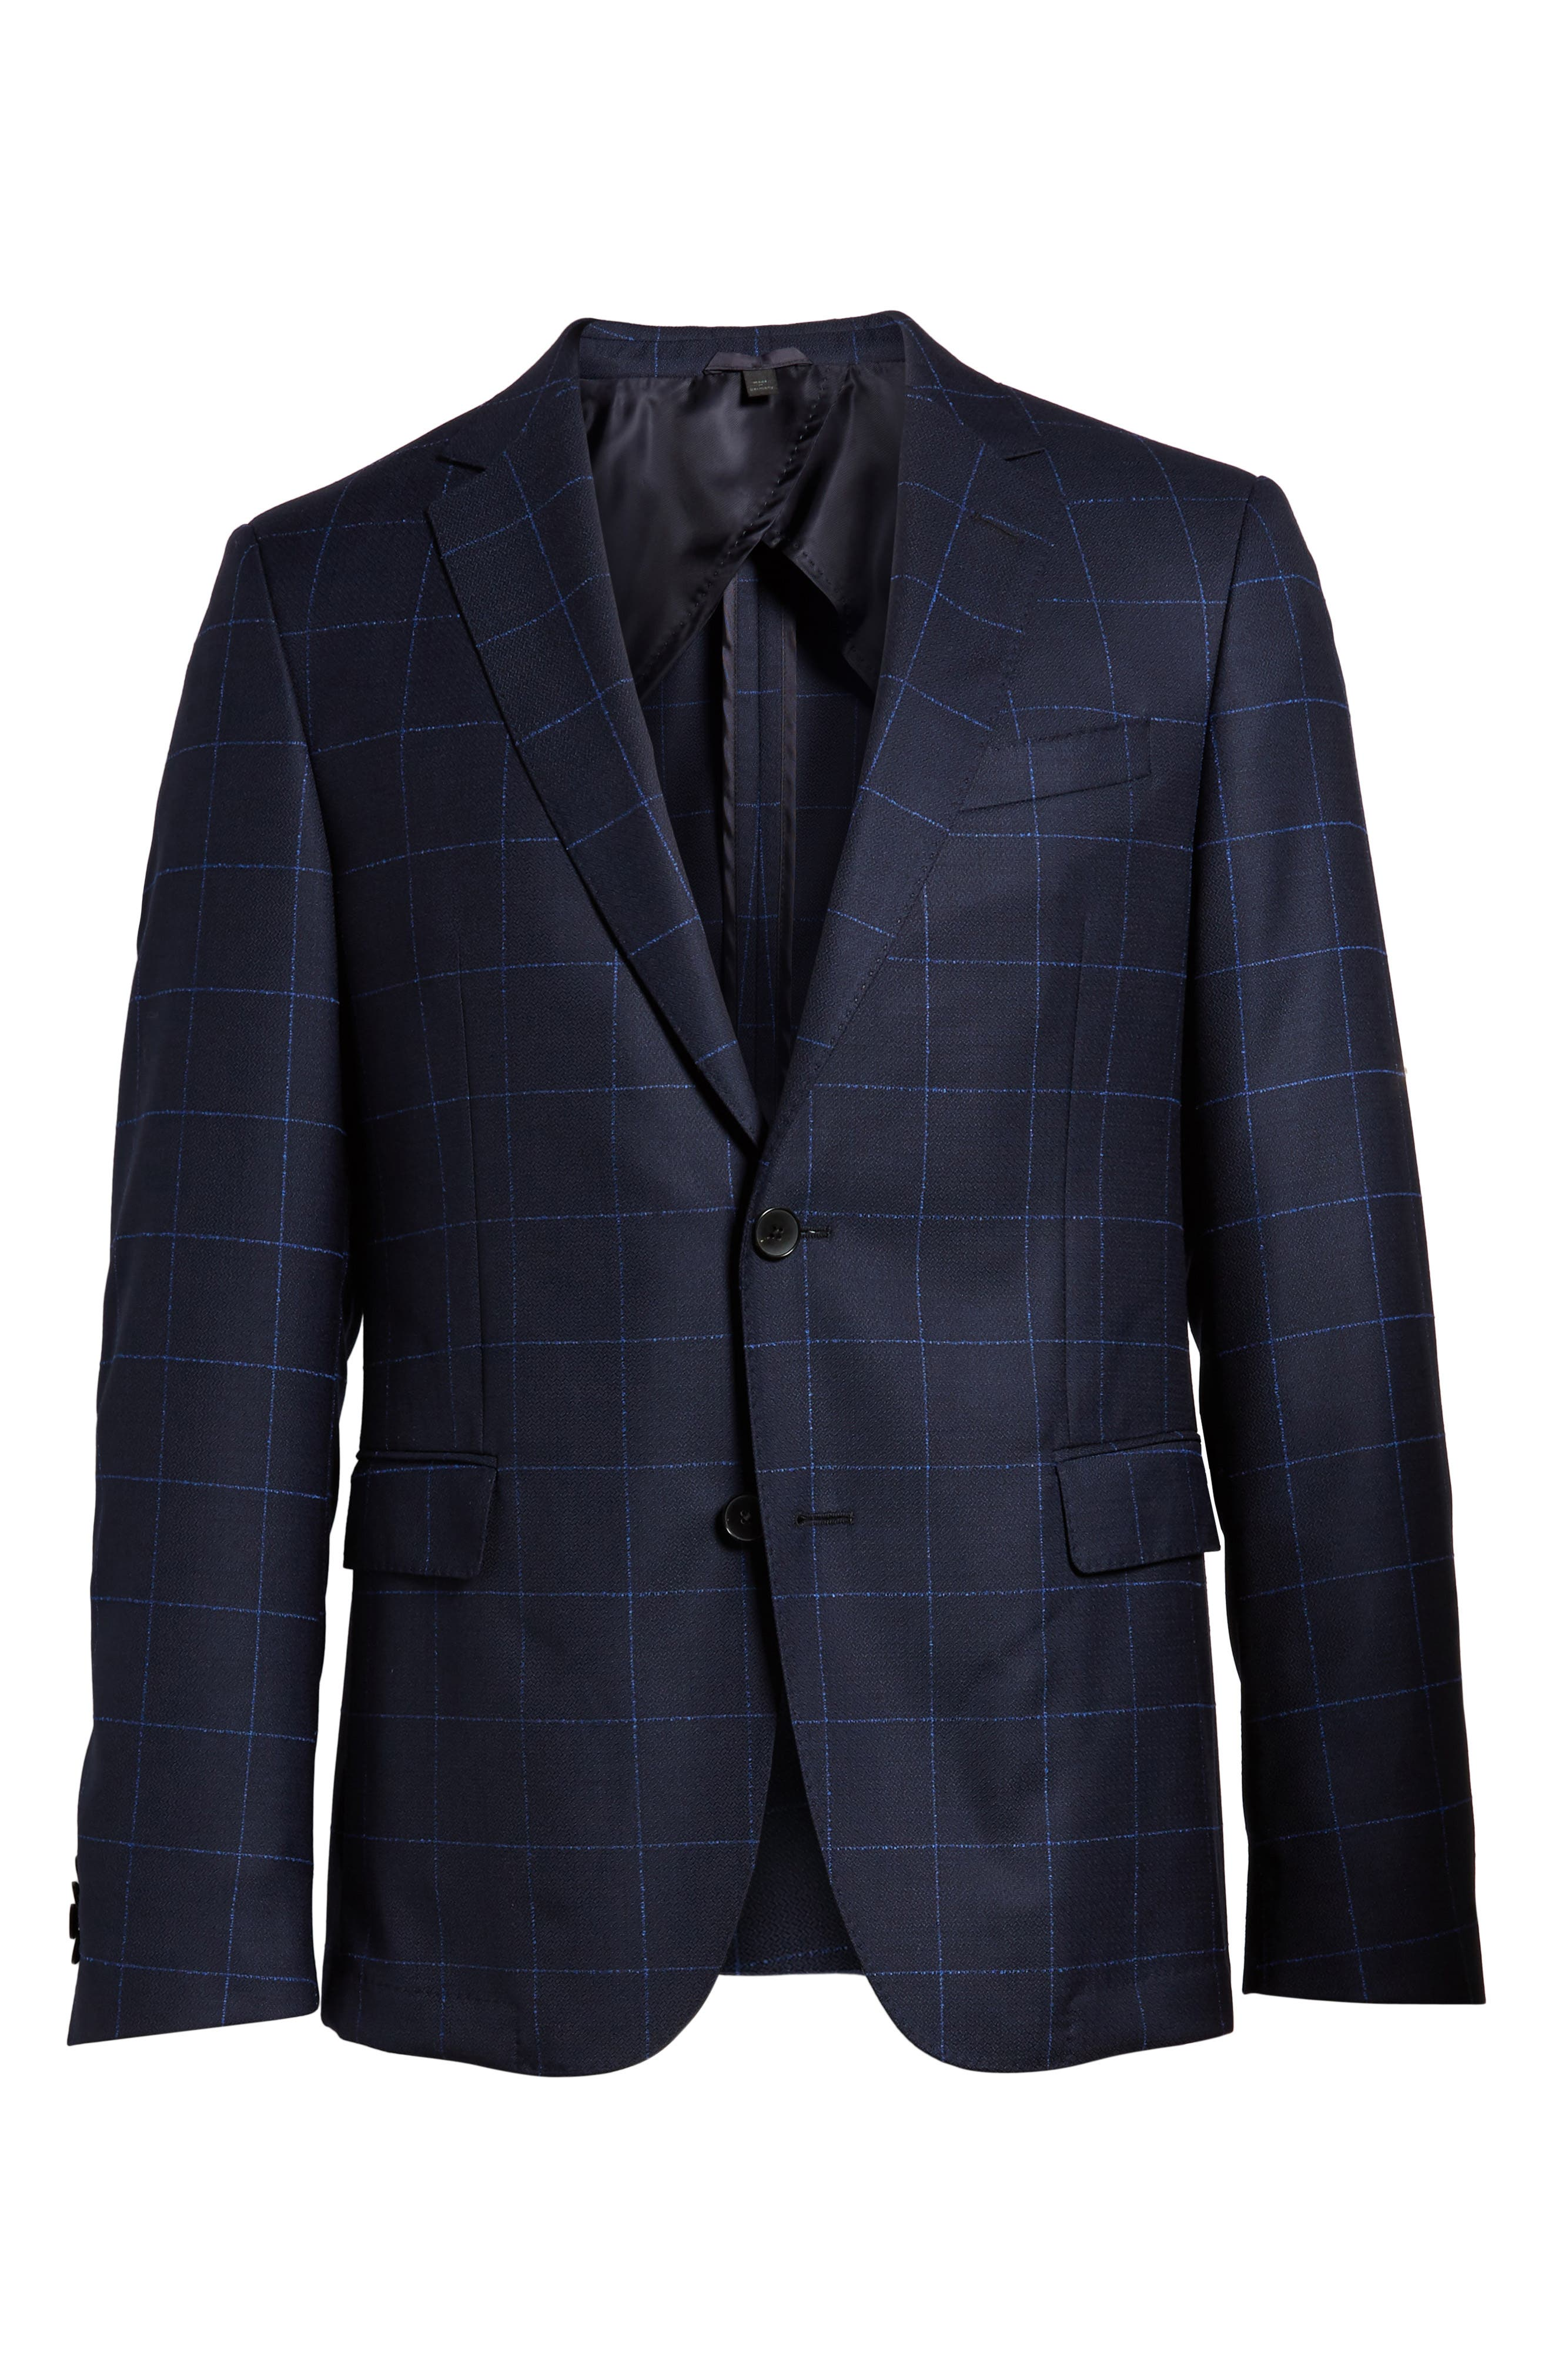 Nordstrom x BOSS Nobis Trim Fit Check Wool Sport Coat,                             Alternate thumbnail 6, color,                             Navy